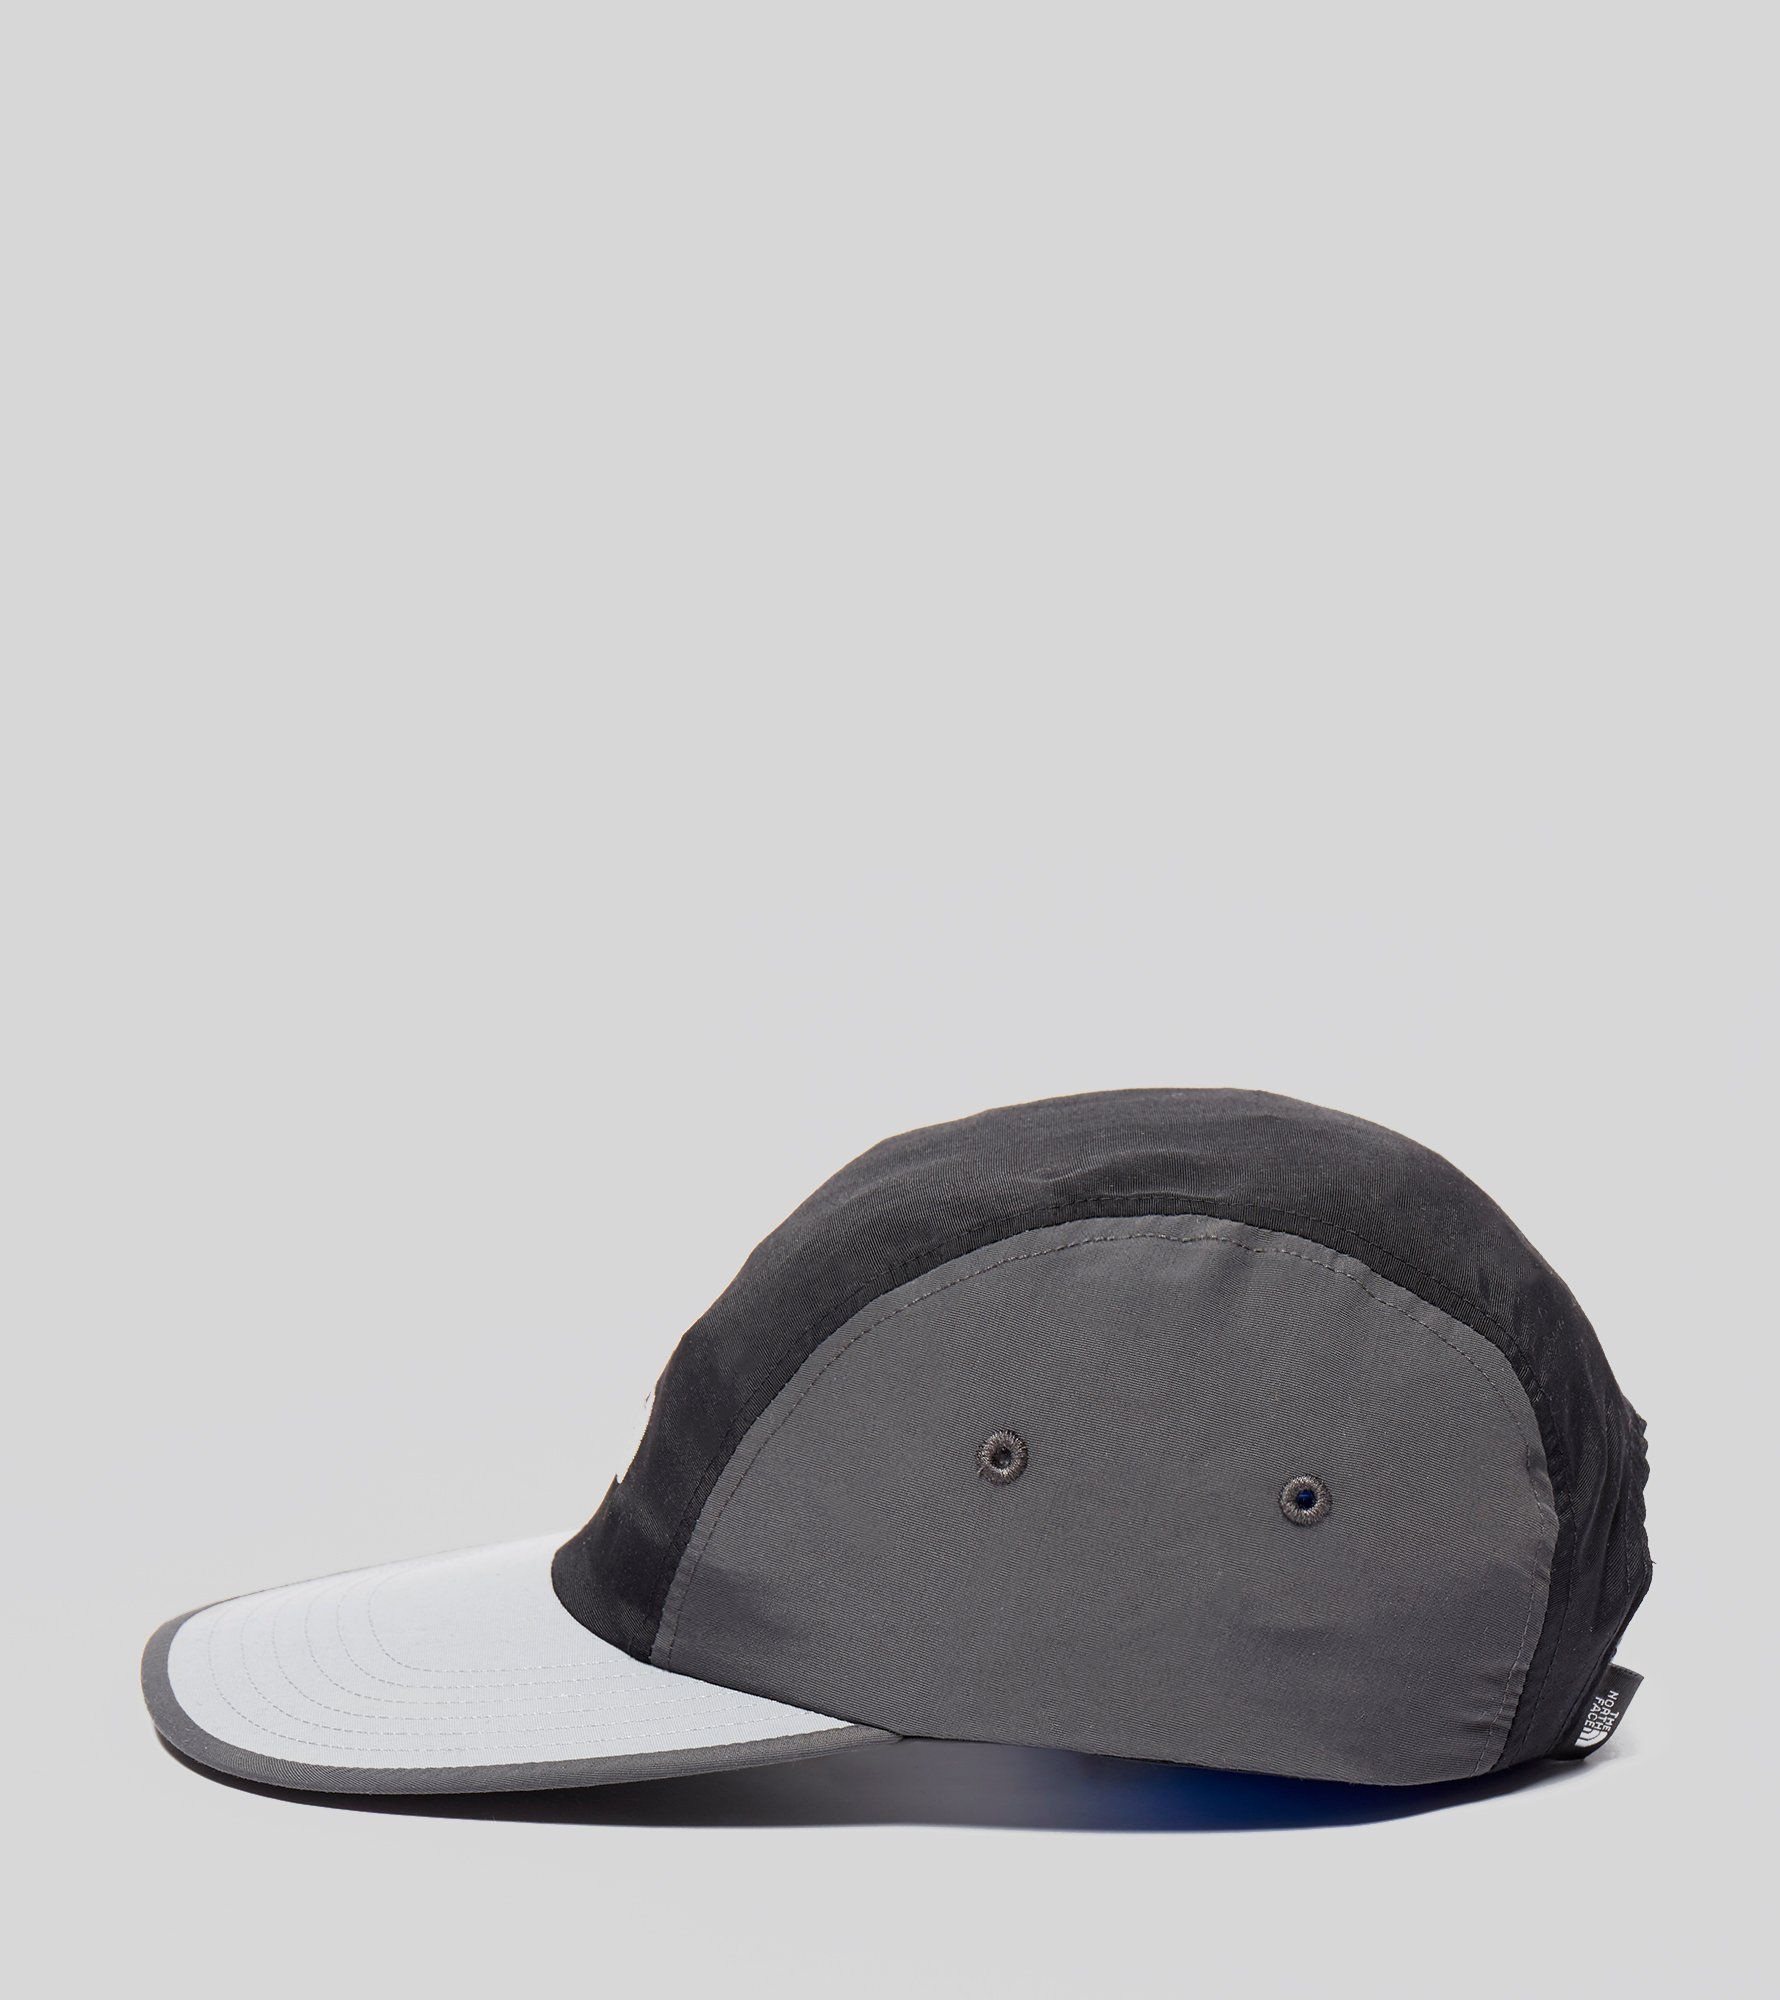 The North Face '92 Rage Ball Cap